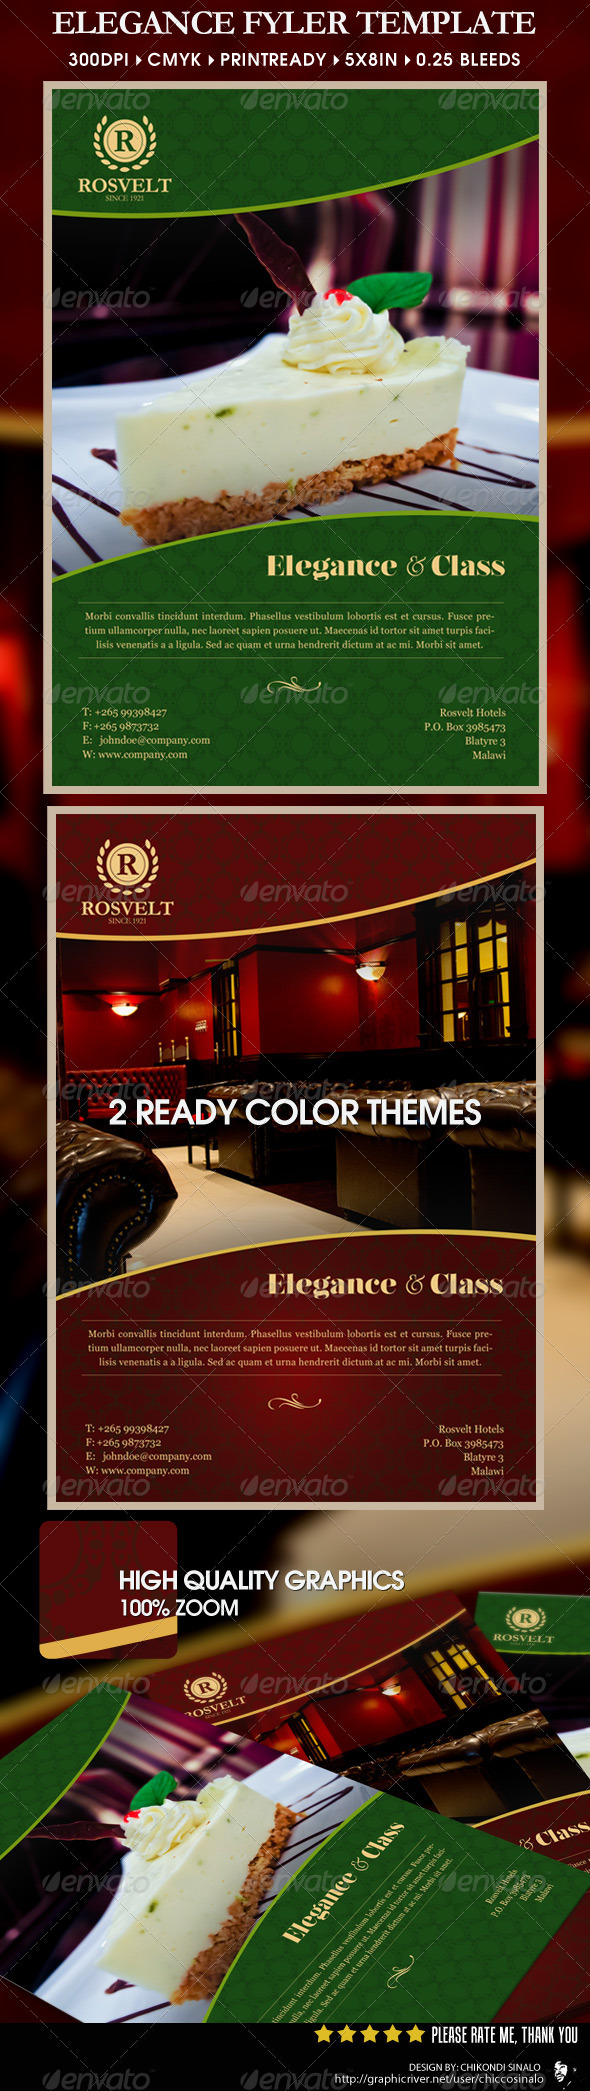 Elegance Flyer Template - Restaurant Flyers